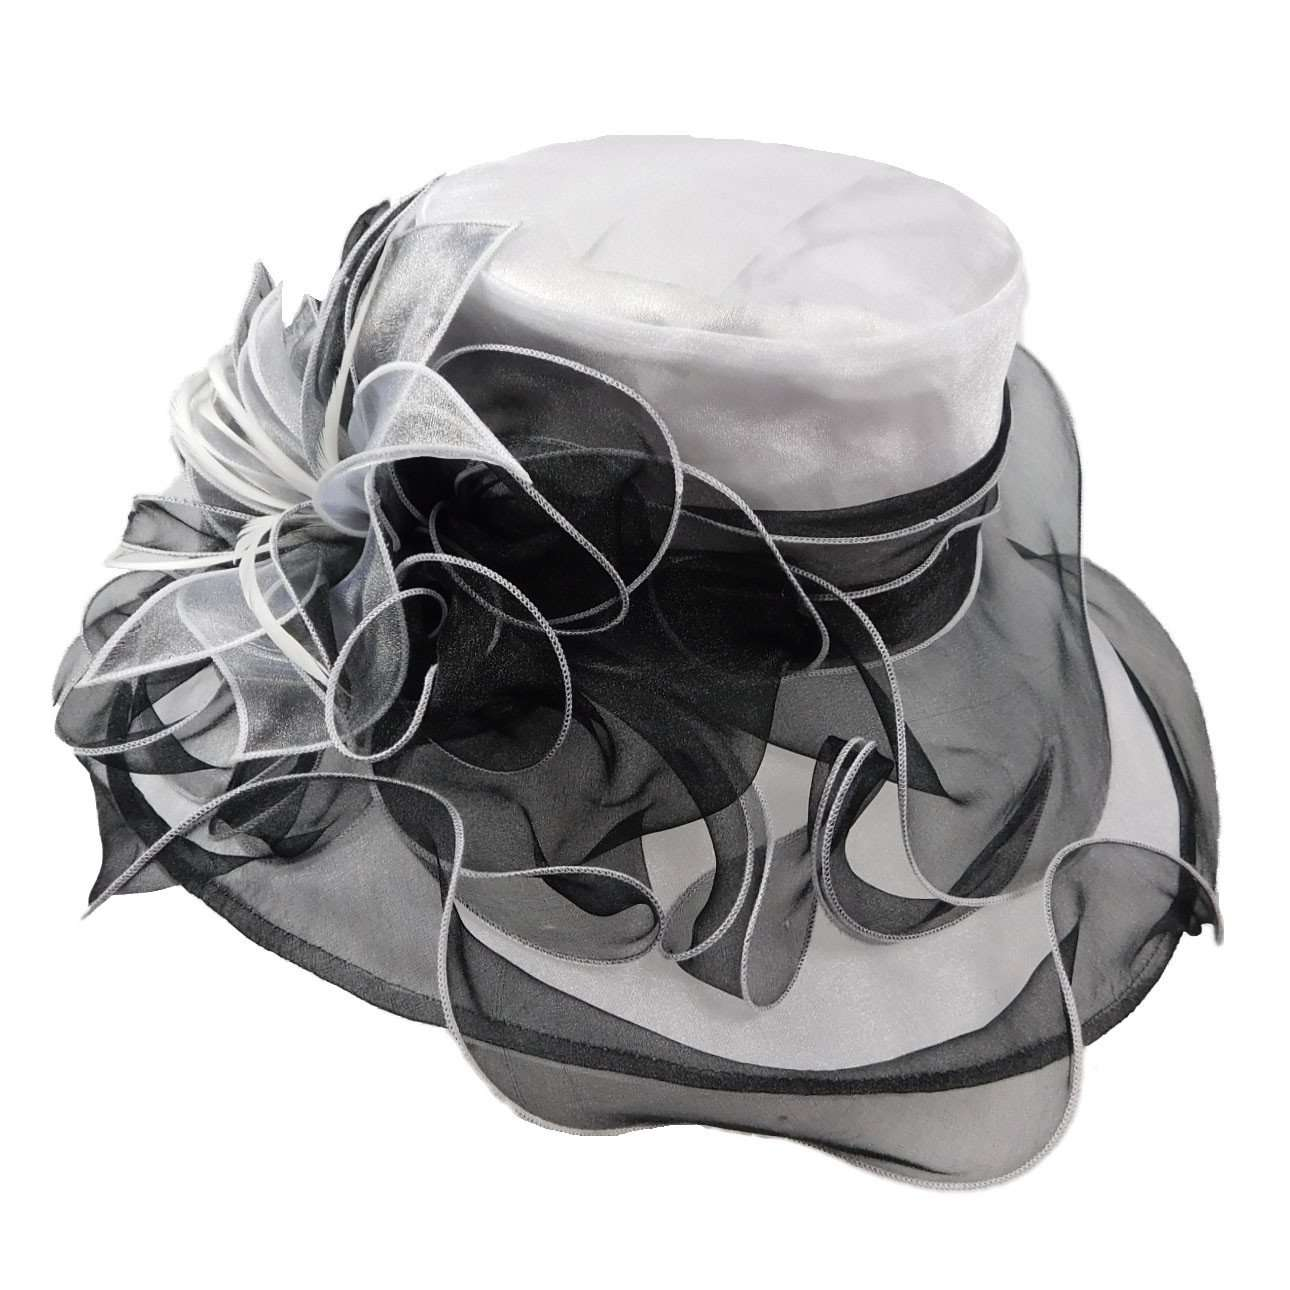 White and Black Organza Hat with Two Tone Floral Accent - SetarTrading Hats